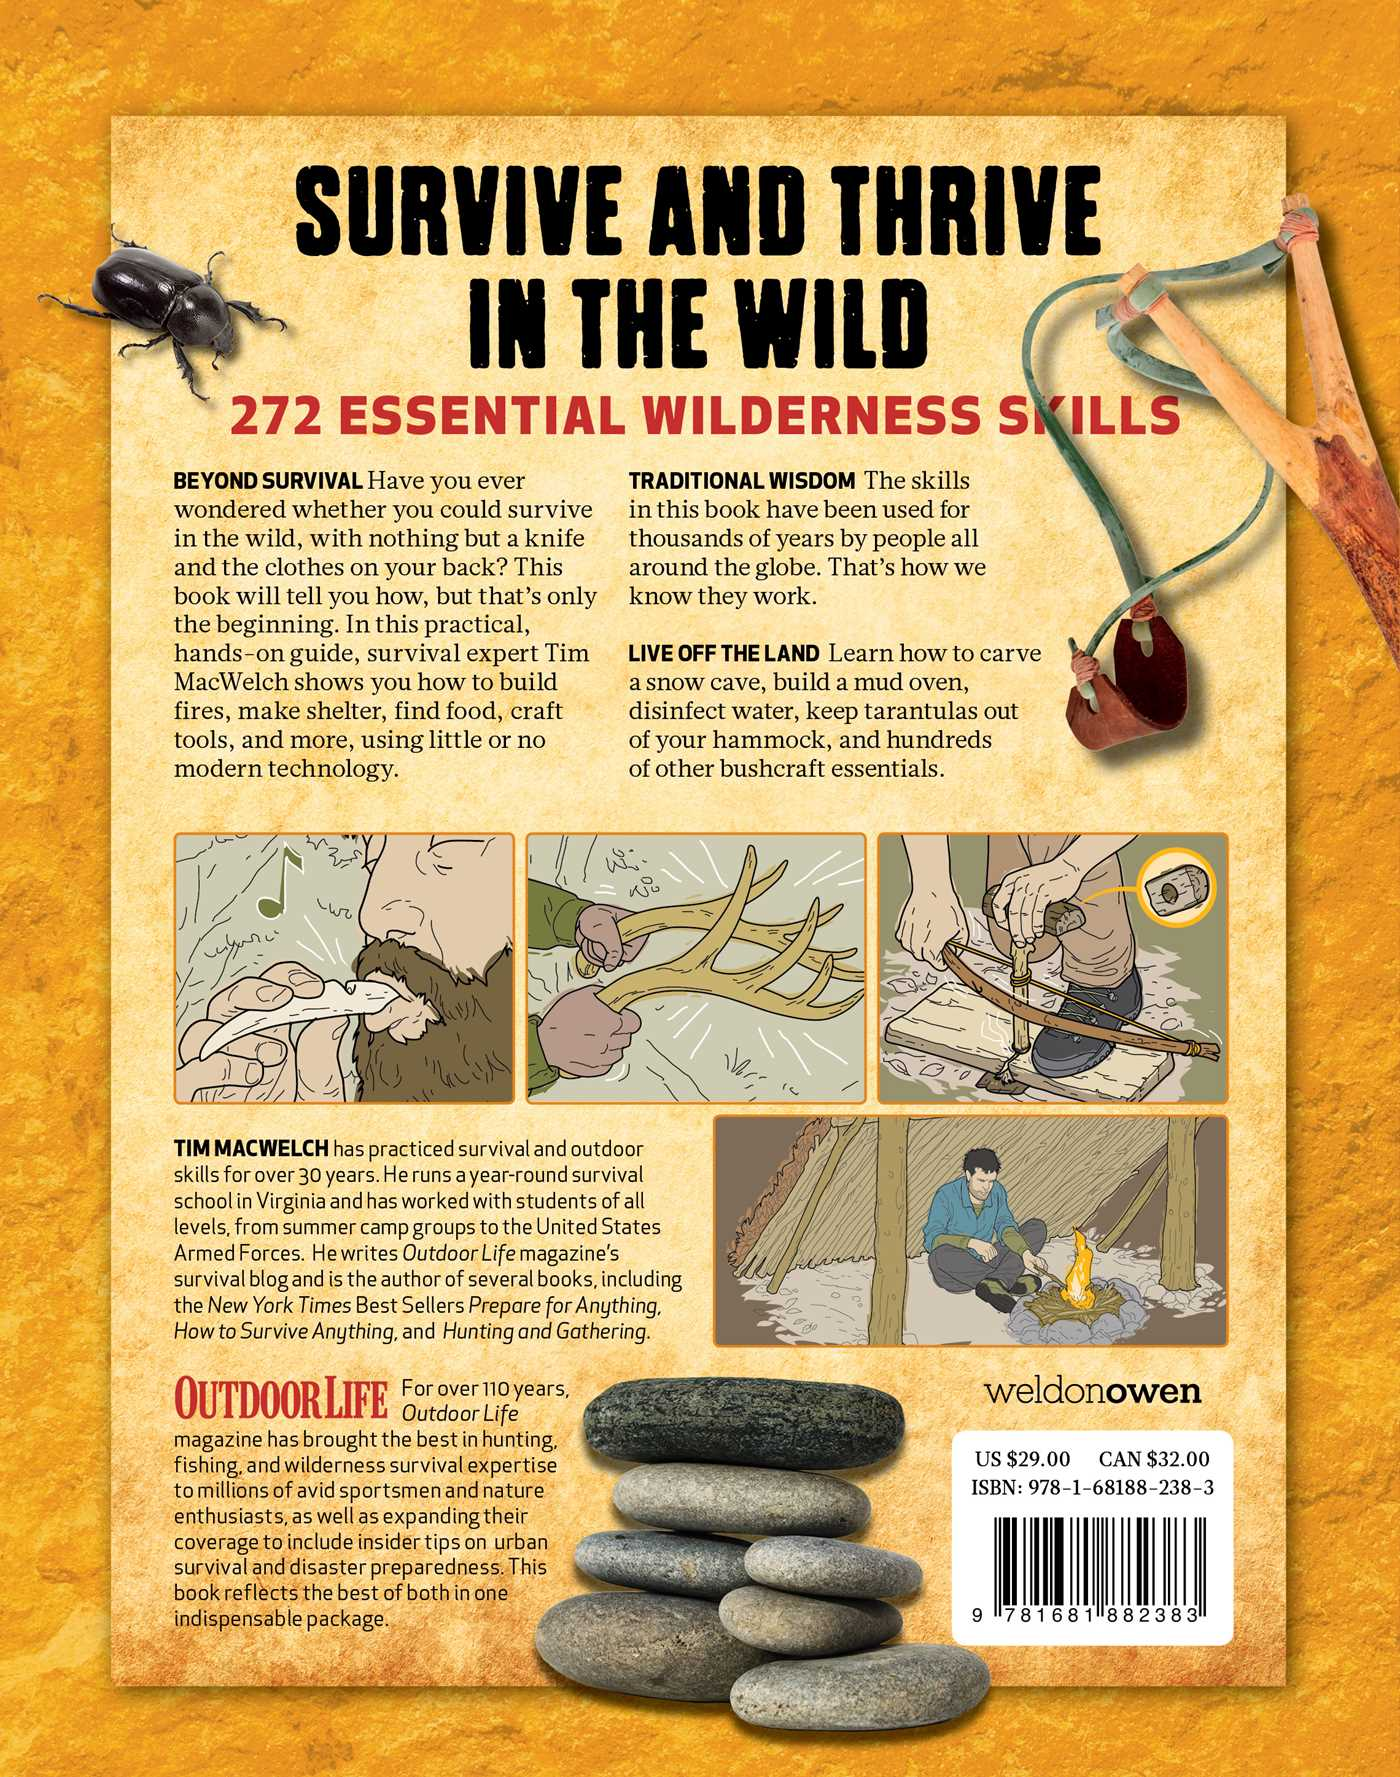 The ultimate bushcraft survival manual 9781681882383 hr back